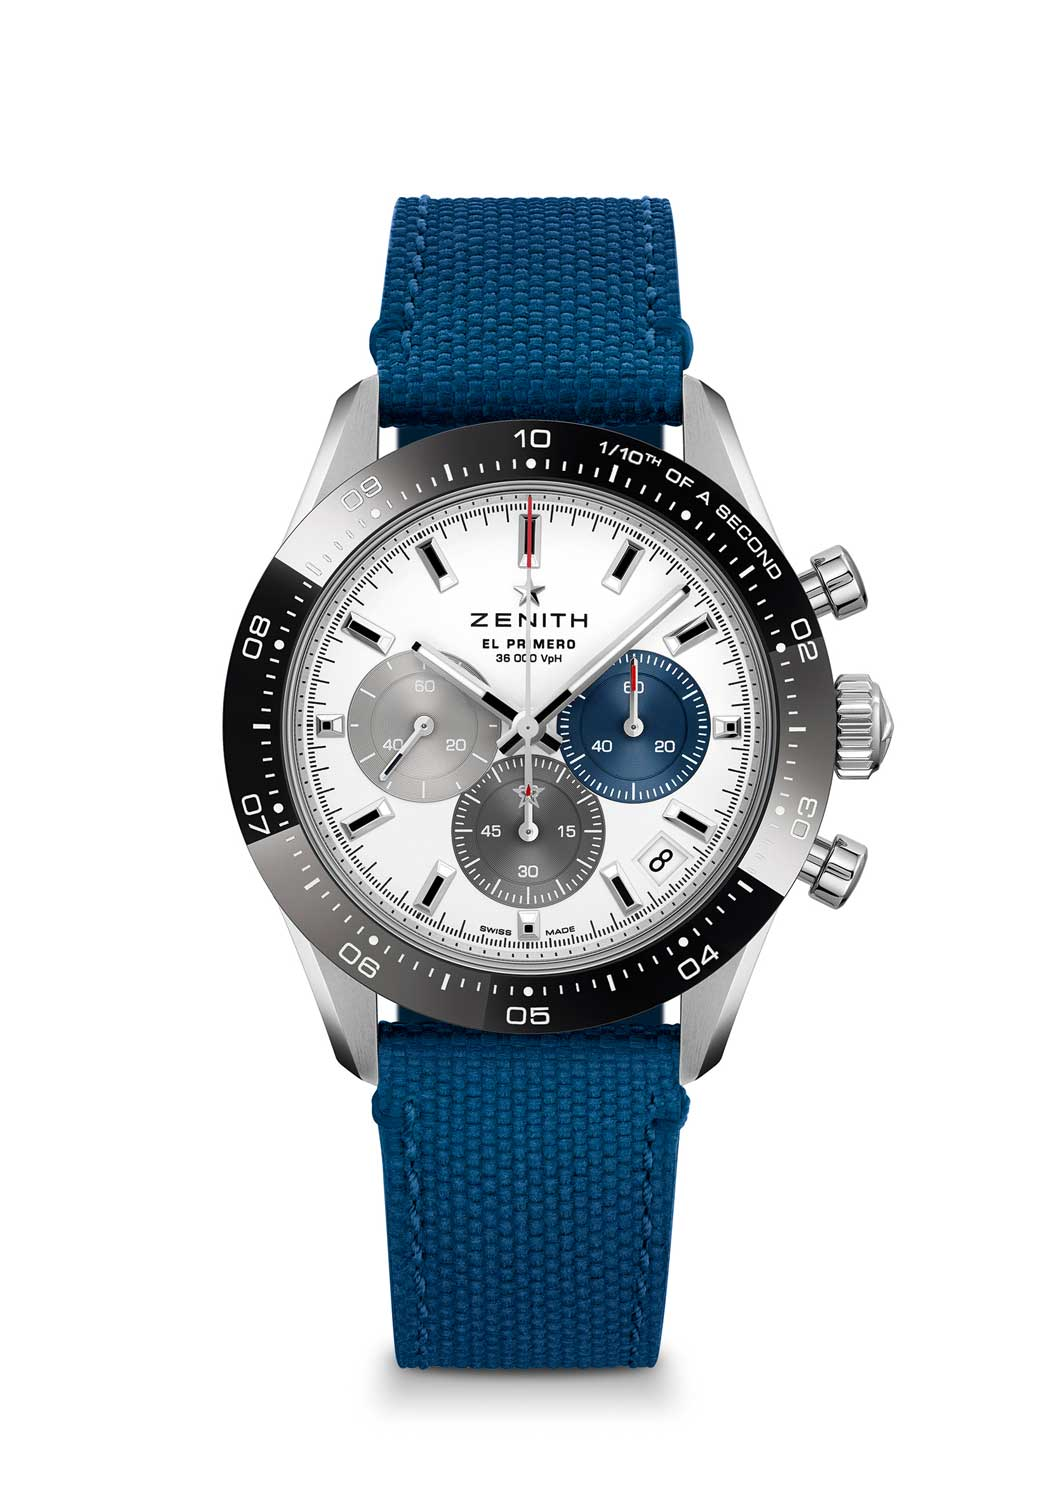 Zenith Chronomaster Sport ref. 03.3100.3600/69.M3100 with a white dial, fitted on a Cordura effect bracelet